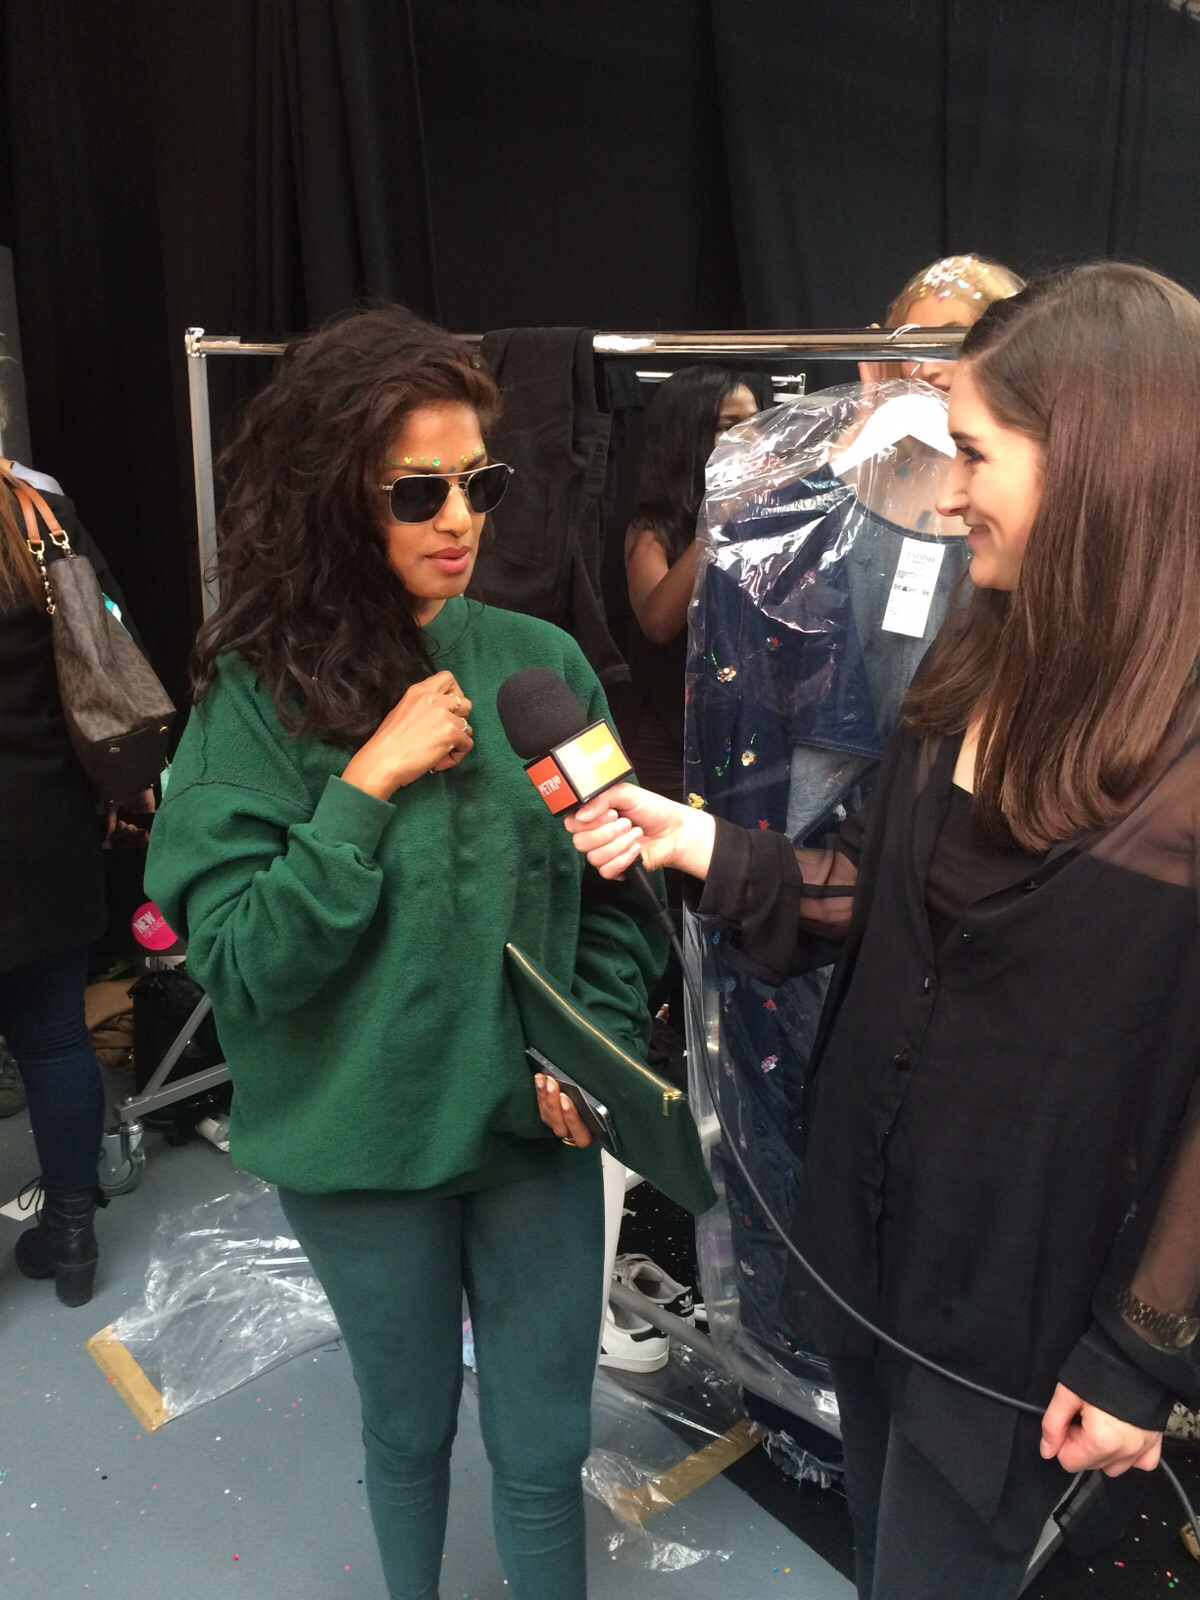 Elizabeth Neep speaking with rapper and songwriter M.I.A, backstage at Ashish SS'16 show